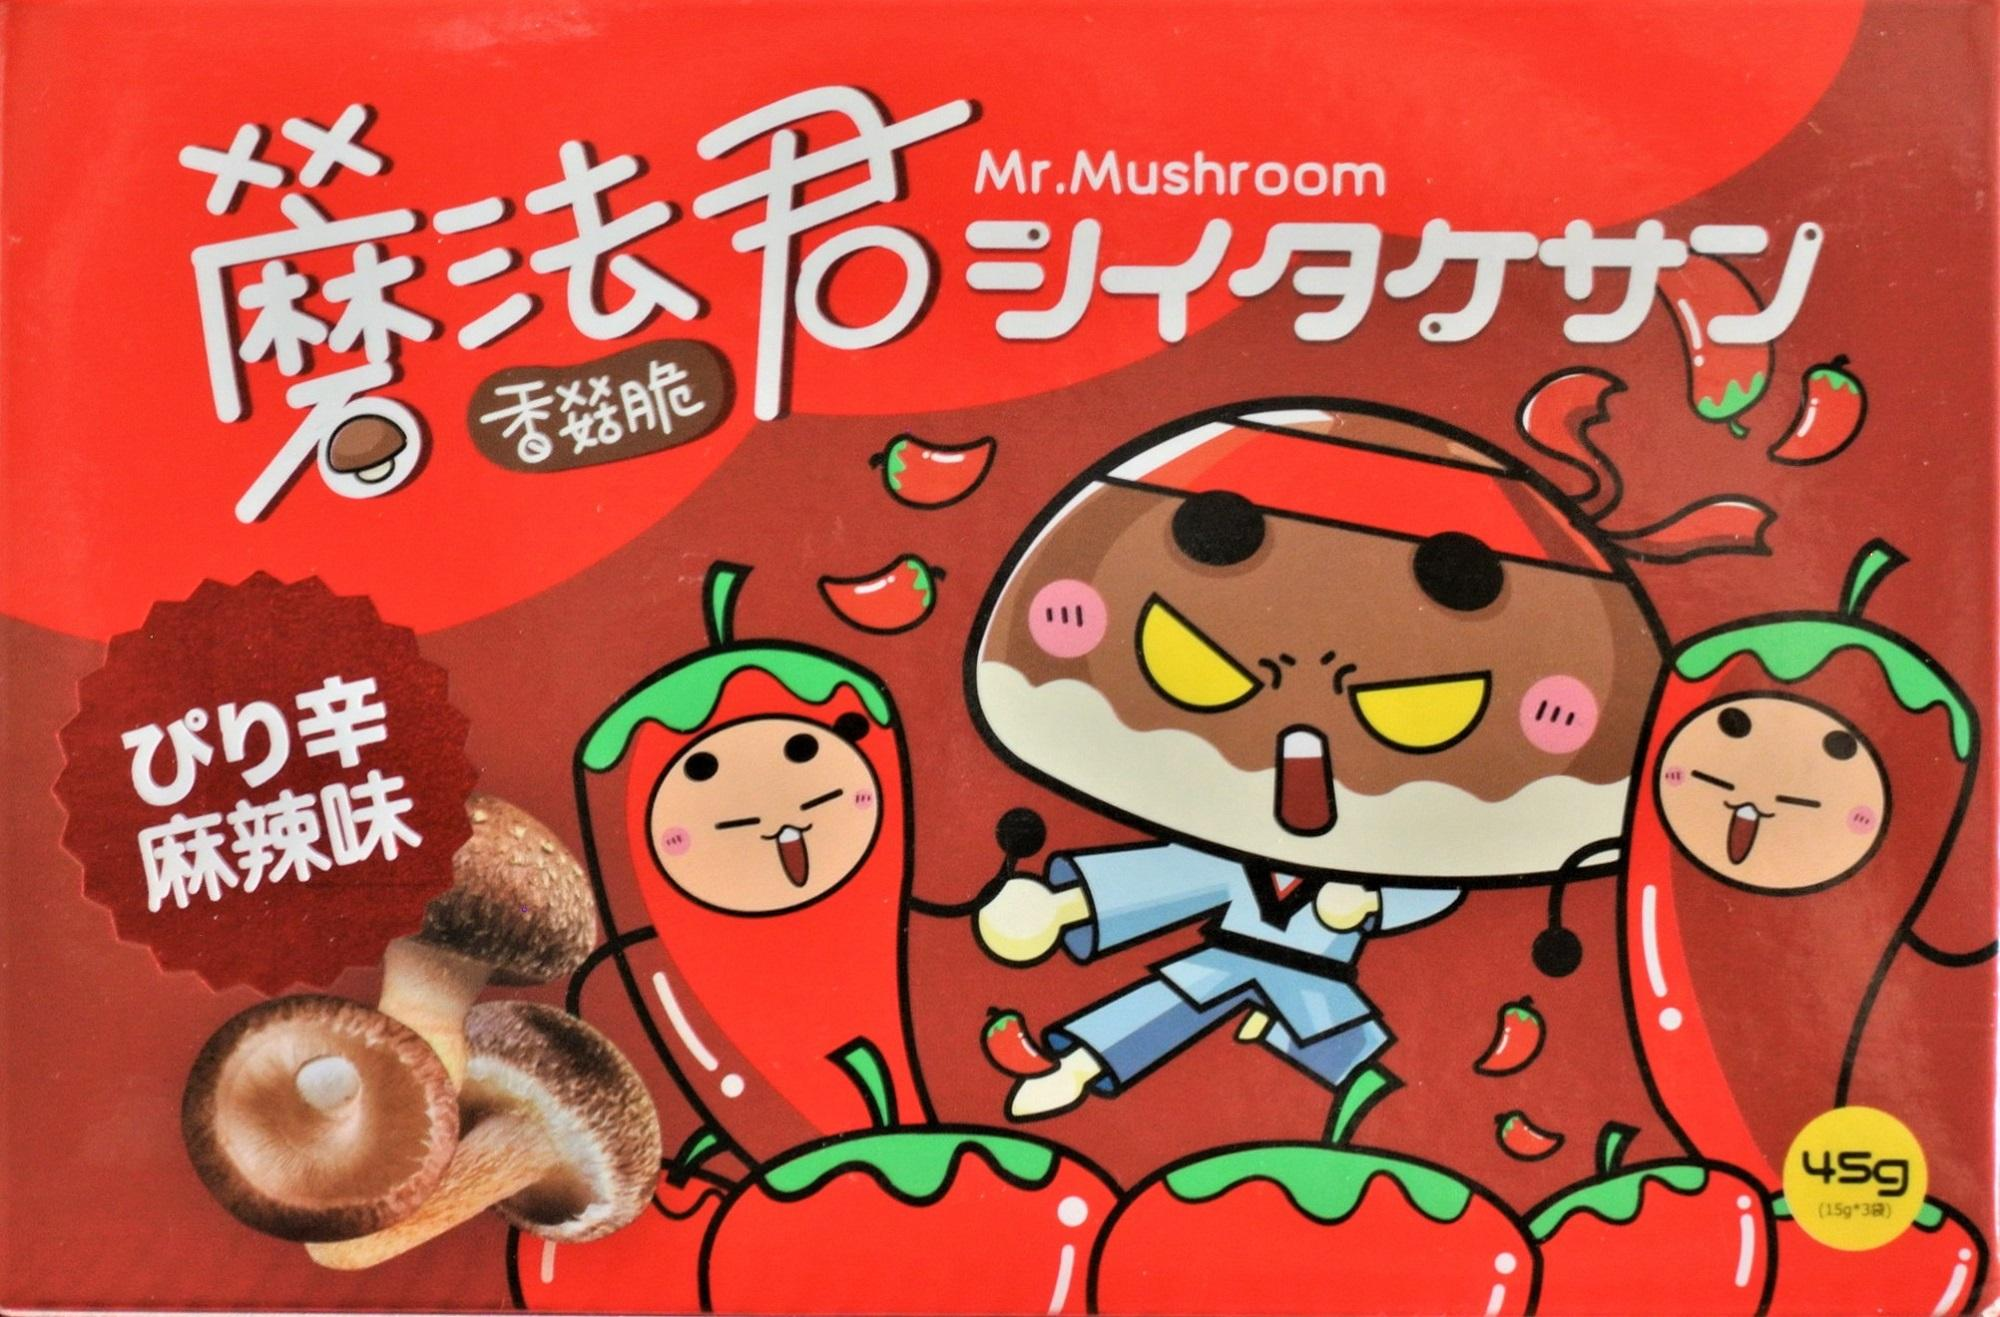 Mr Mushroom Crisps Mala Flavour By Tradacon Pte Ltd.